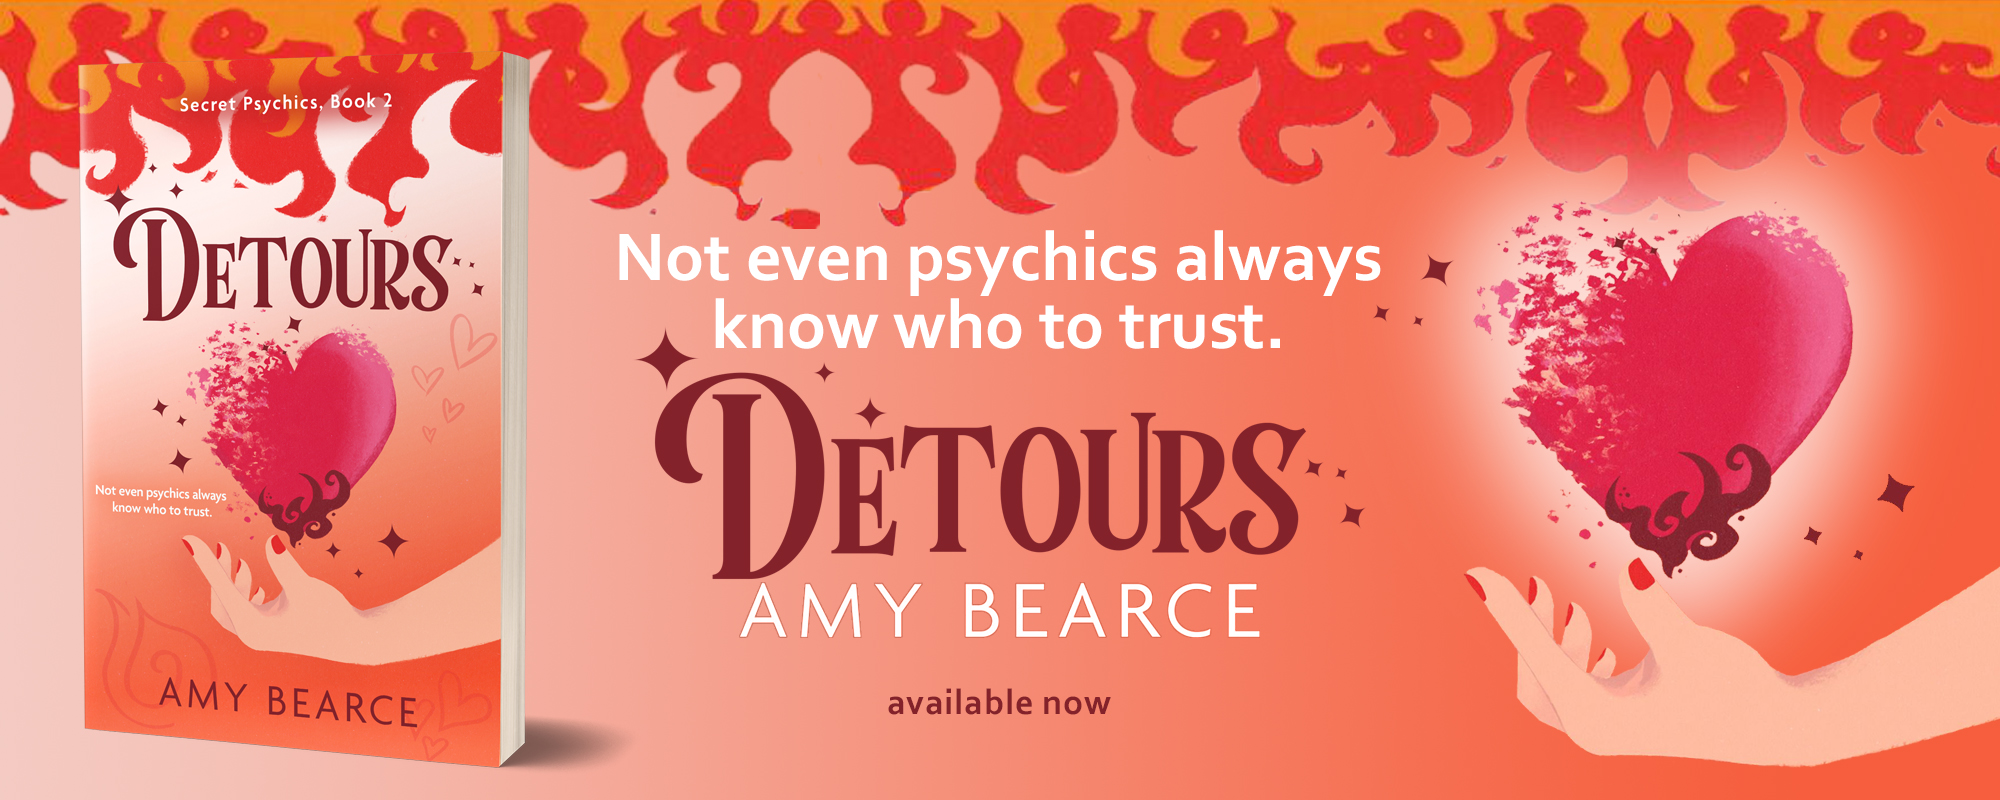 Detours by Amy Bearce, available now